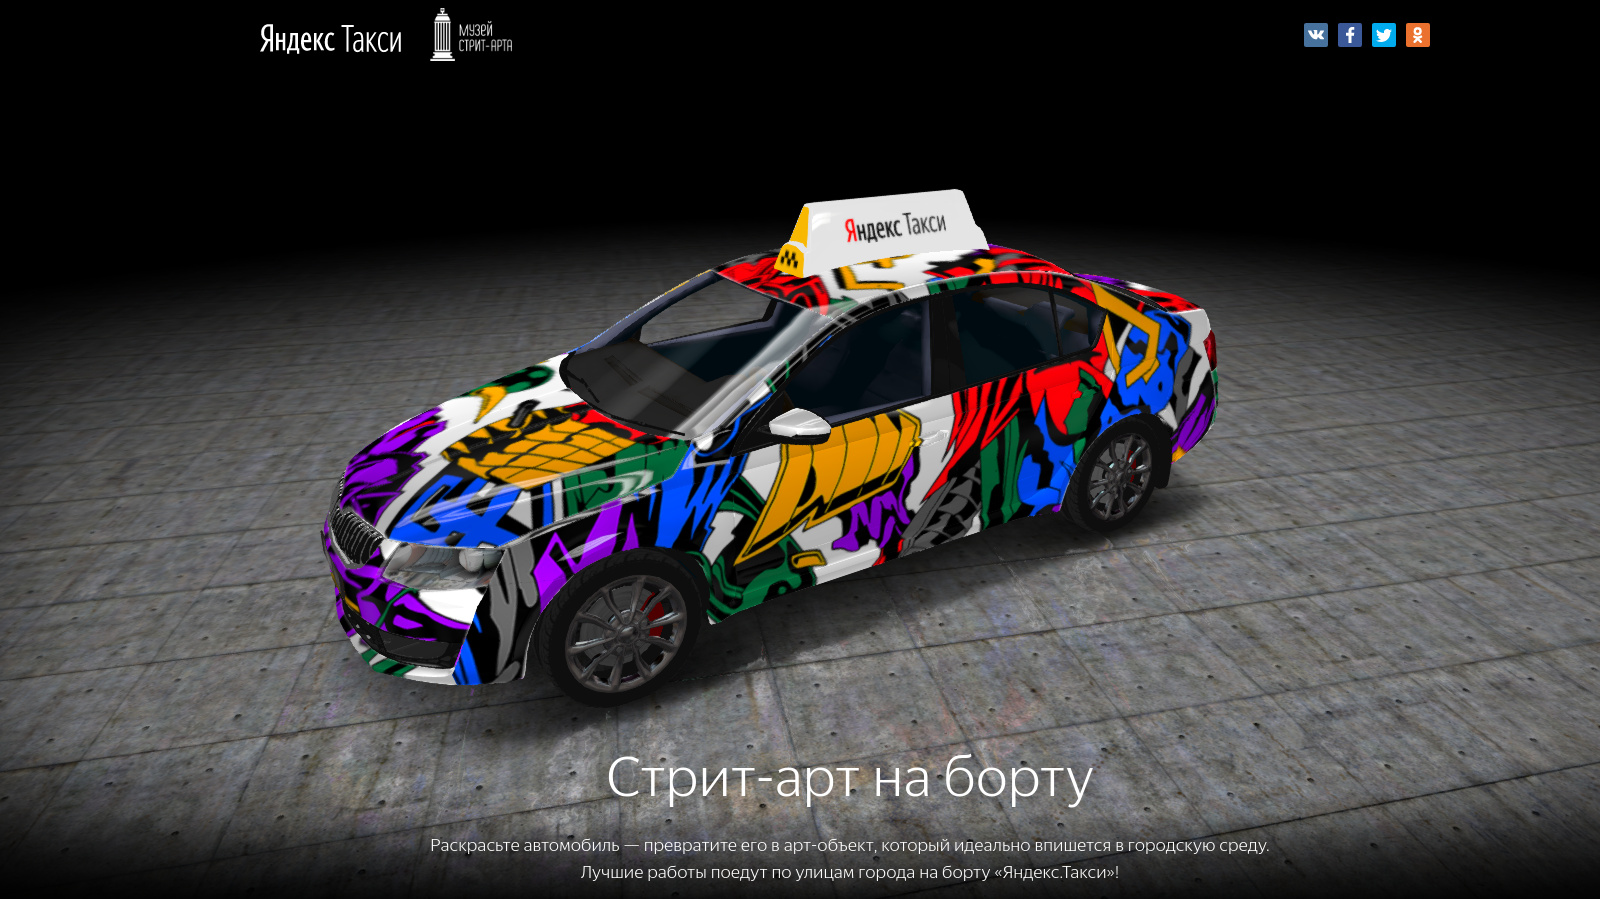 Yandex Taxi Design Contest preview